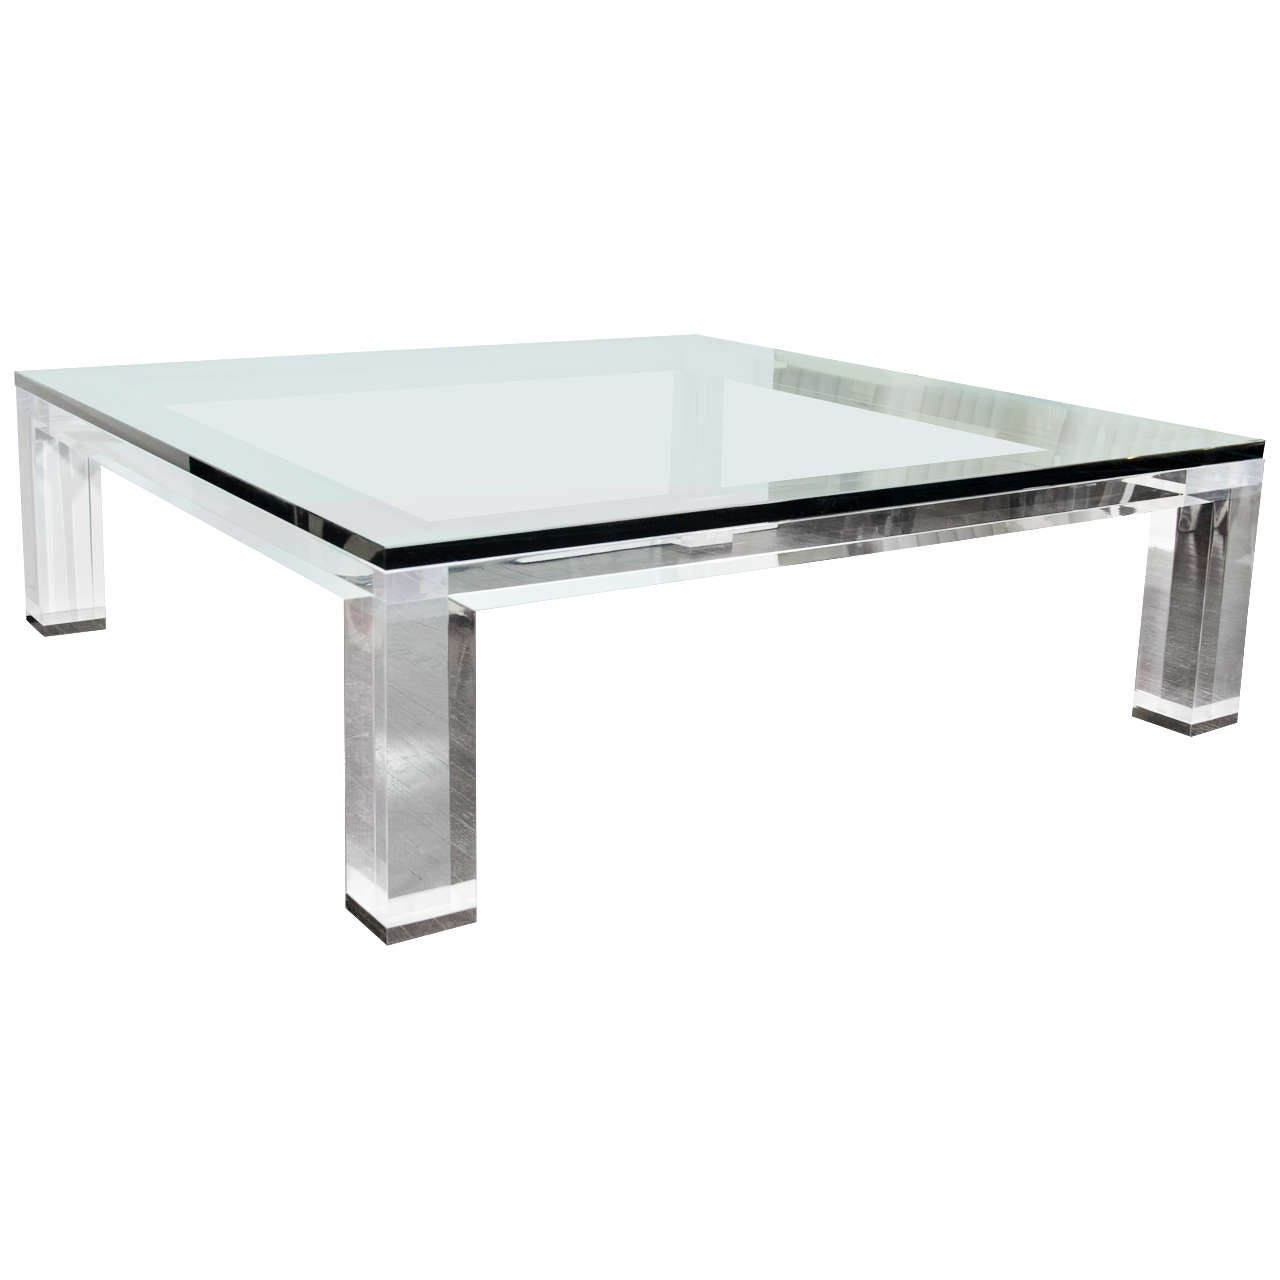 Custom Lucite And Glass Coffee Table For Sale At 1stdibs